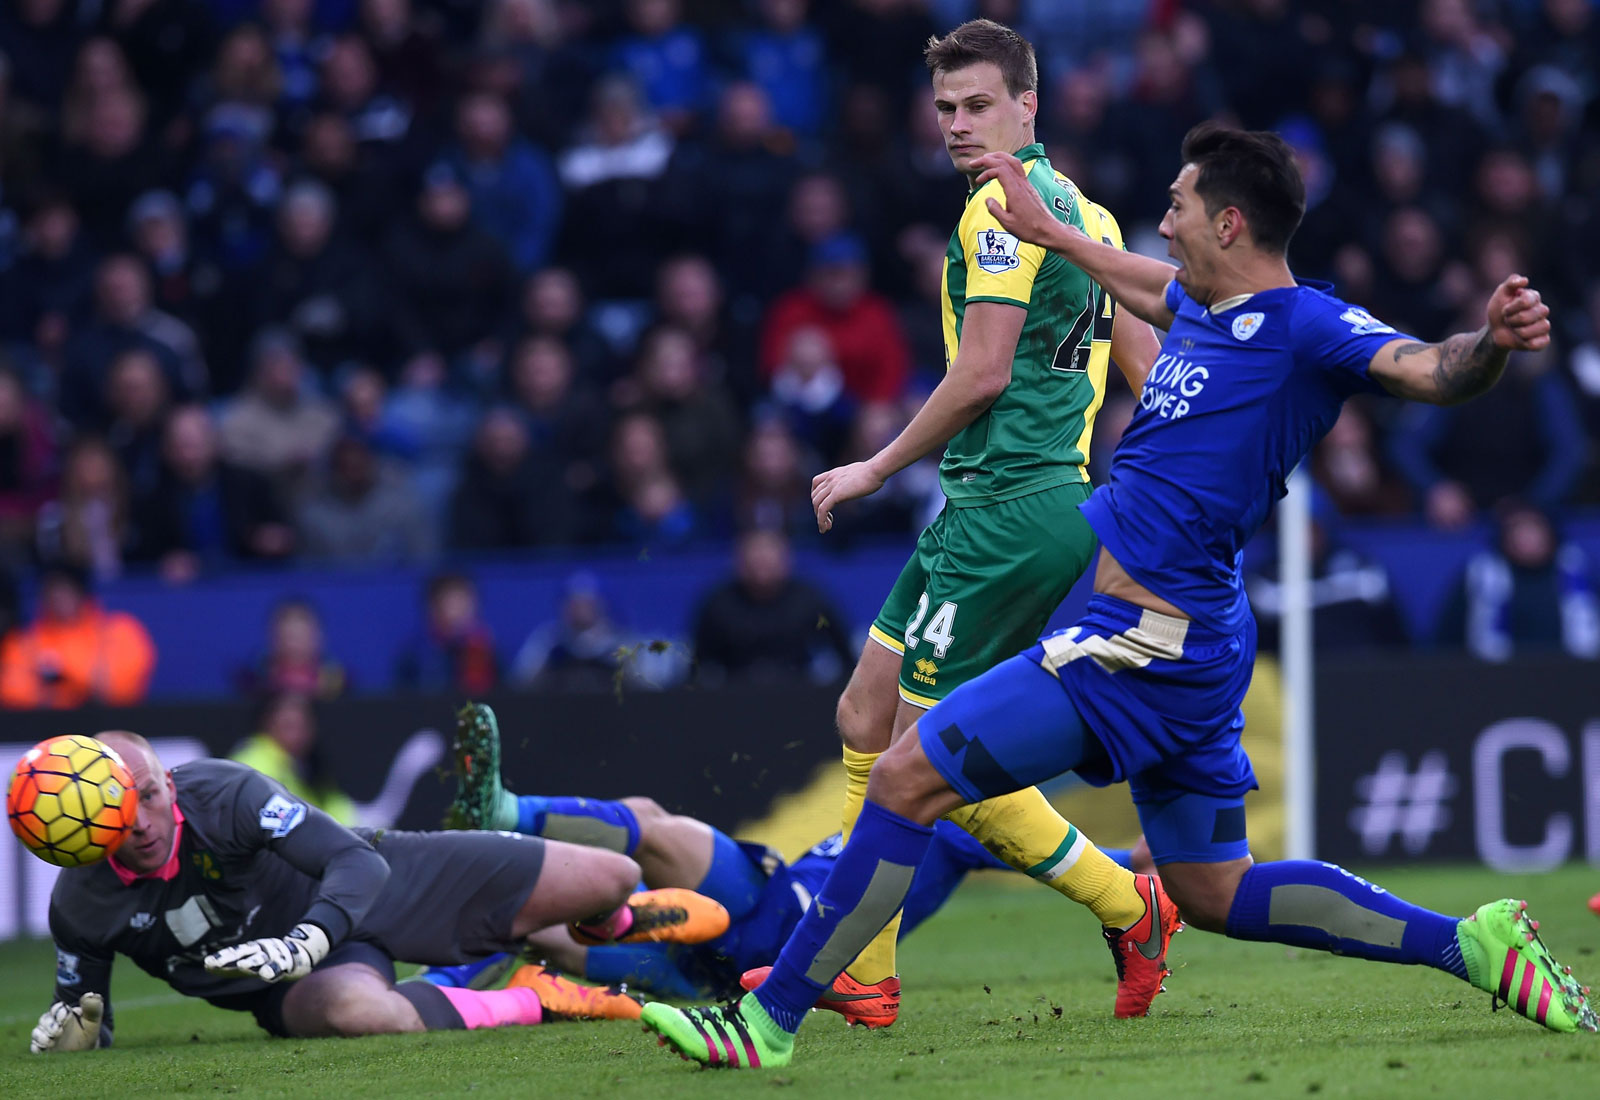 Both times Leicester lost to Arsenal it followed up with wins over Norwich City to right the ship. The second time was far more thrilling, with Leonardo Ulloa scoring an 89th-minute winner at King Power Stadium to put the title ship back on course.